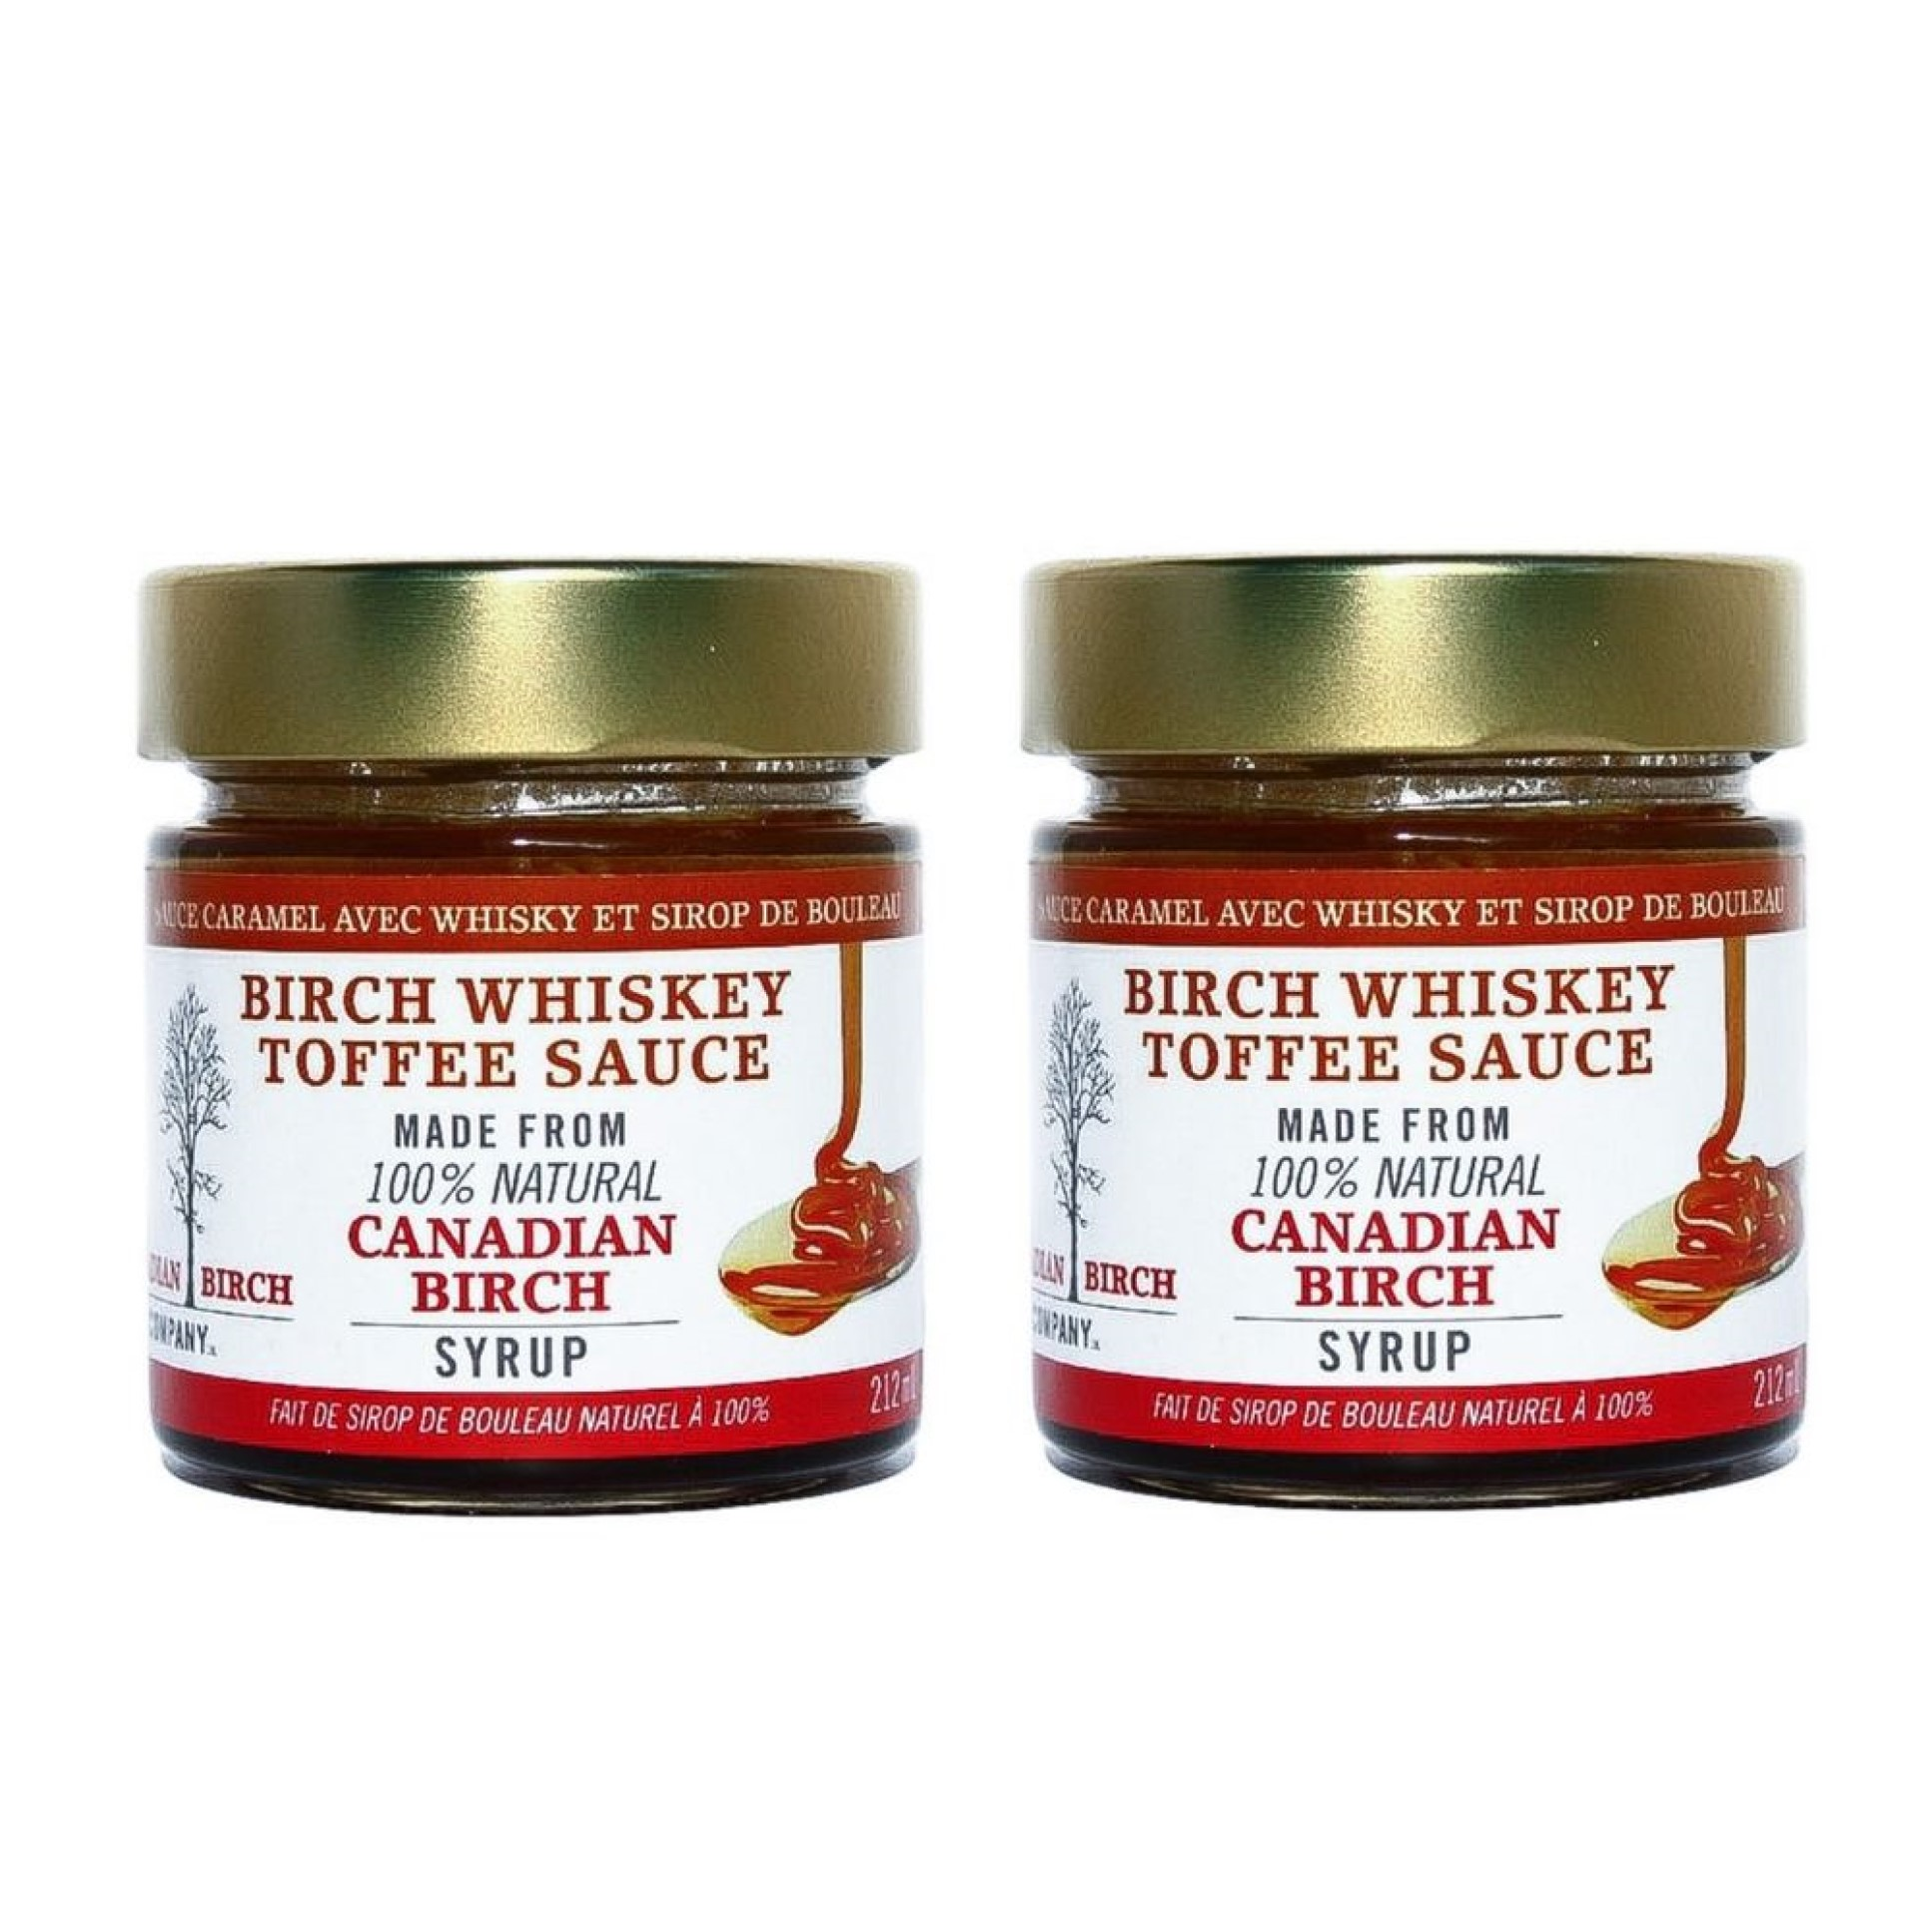 2 Jars of Birch Whiskey Toffee Sauce 212 ml size has a gold colored lid.